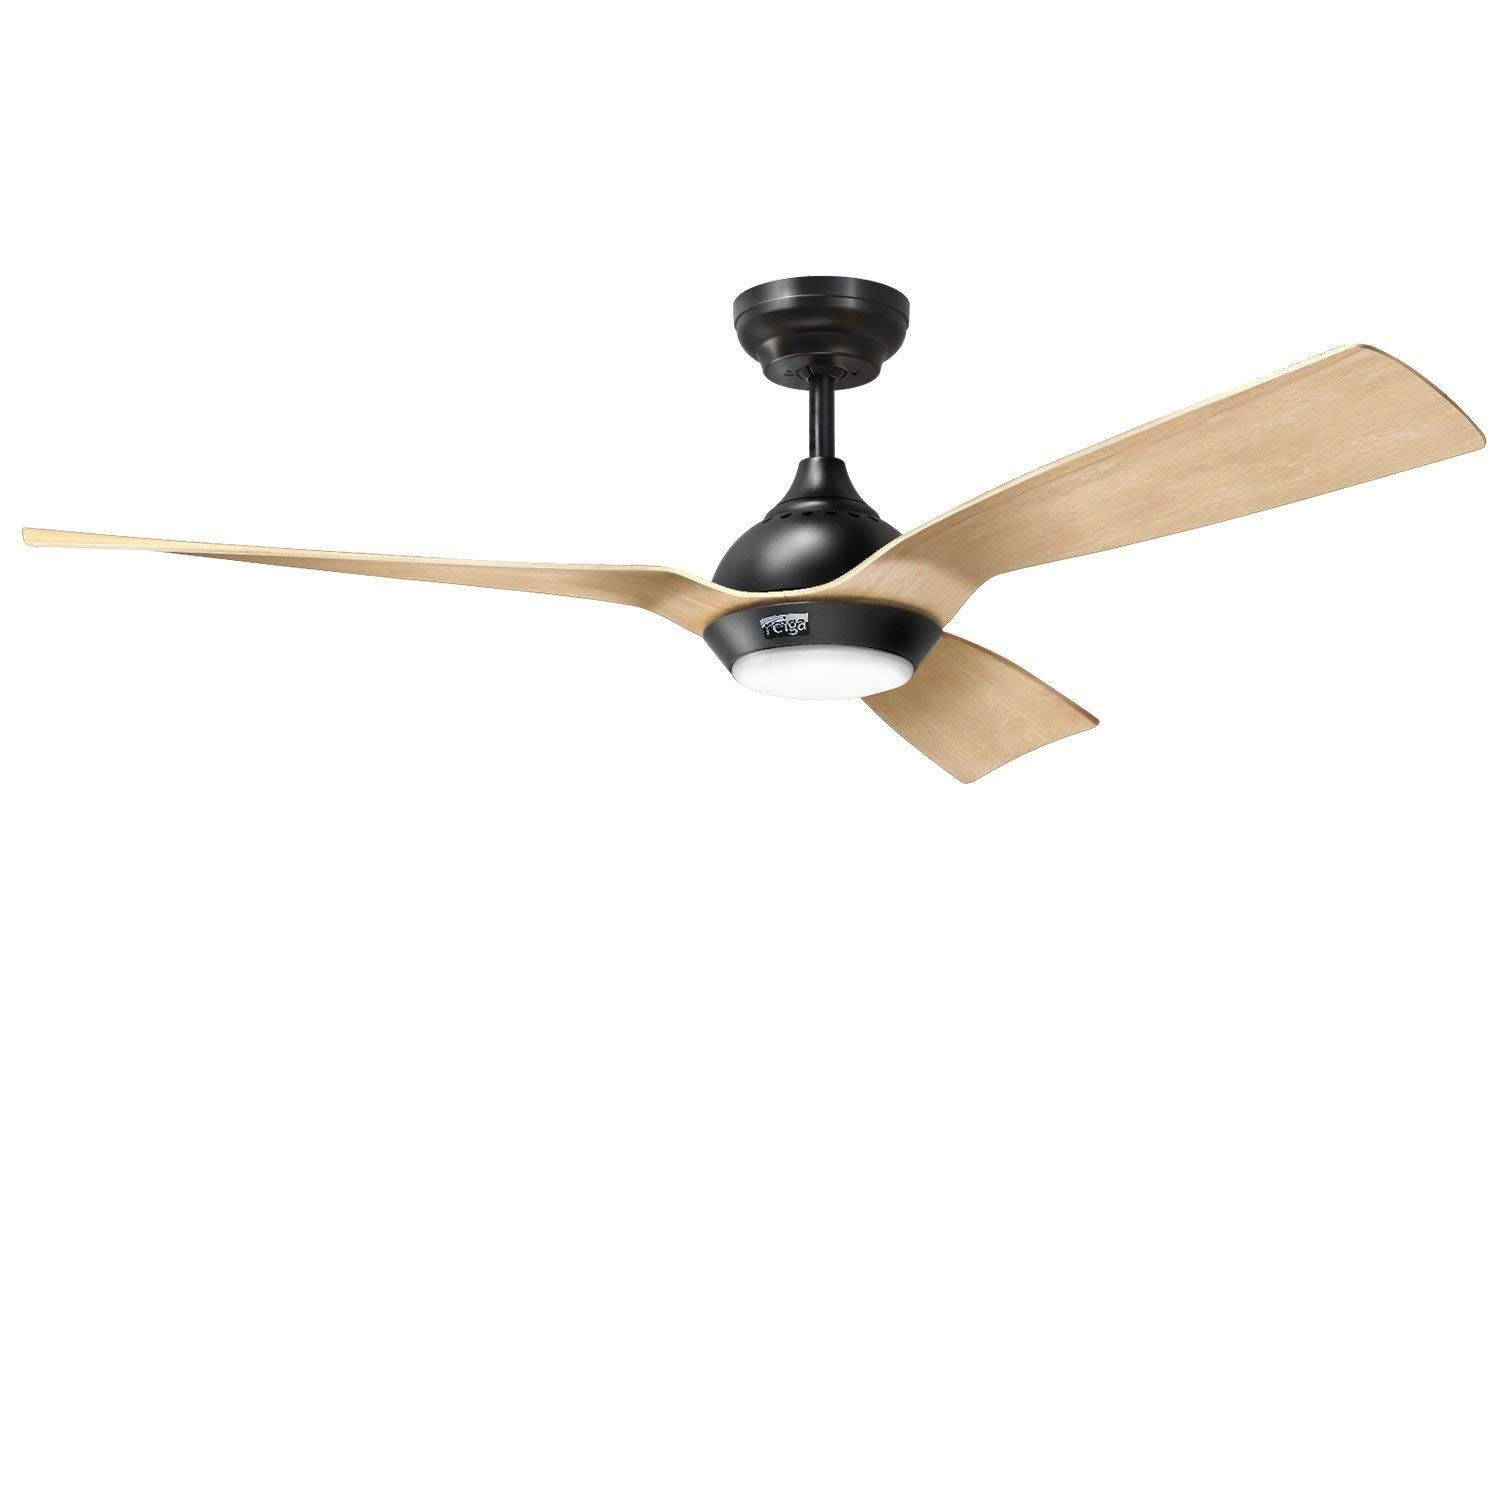 Reiga 52 Inch Downrod Mount Ceiling Fan With Light Remote 3 Hand Painted Blade Suit For Indoor Ou Ceiling Fan Ceiling Fan With Remote Ceiling Fan With Light